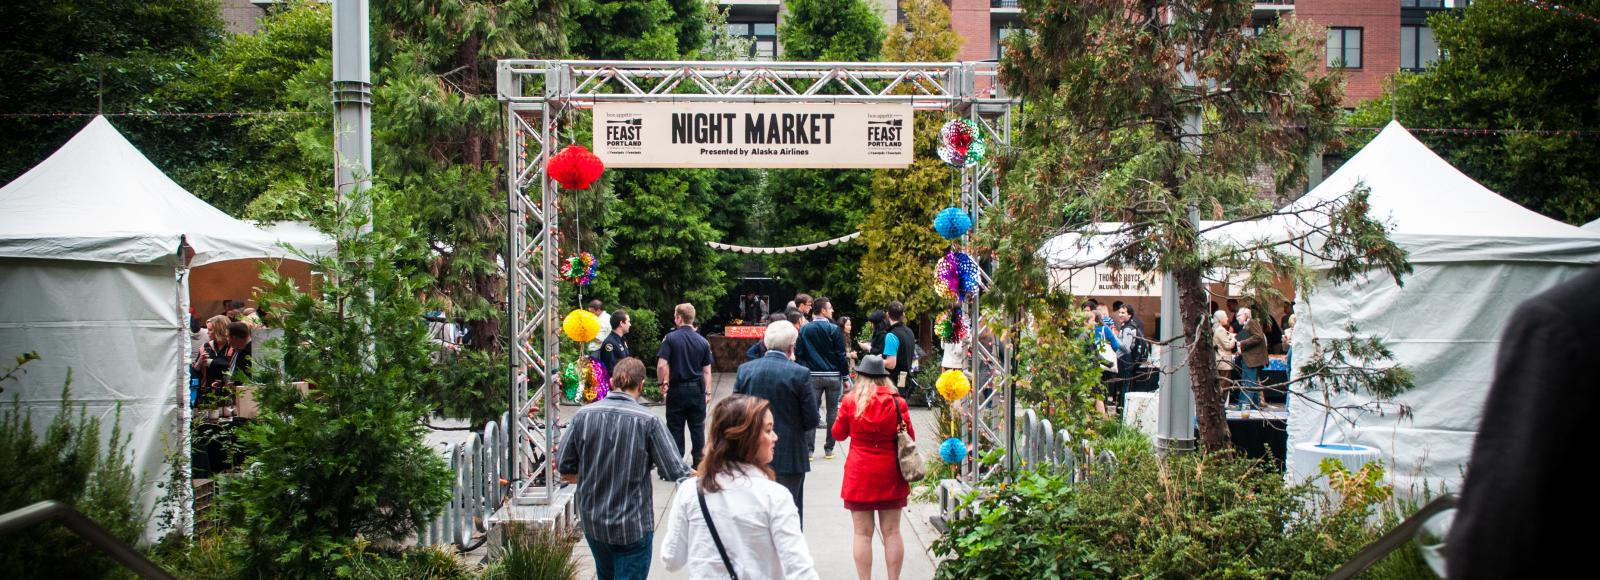 people walking into an outdoor party, tents, brick warehouse, greenery, Feast, Portland Ecotrust